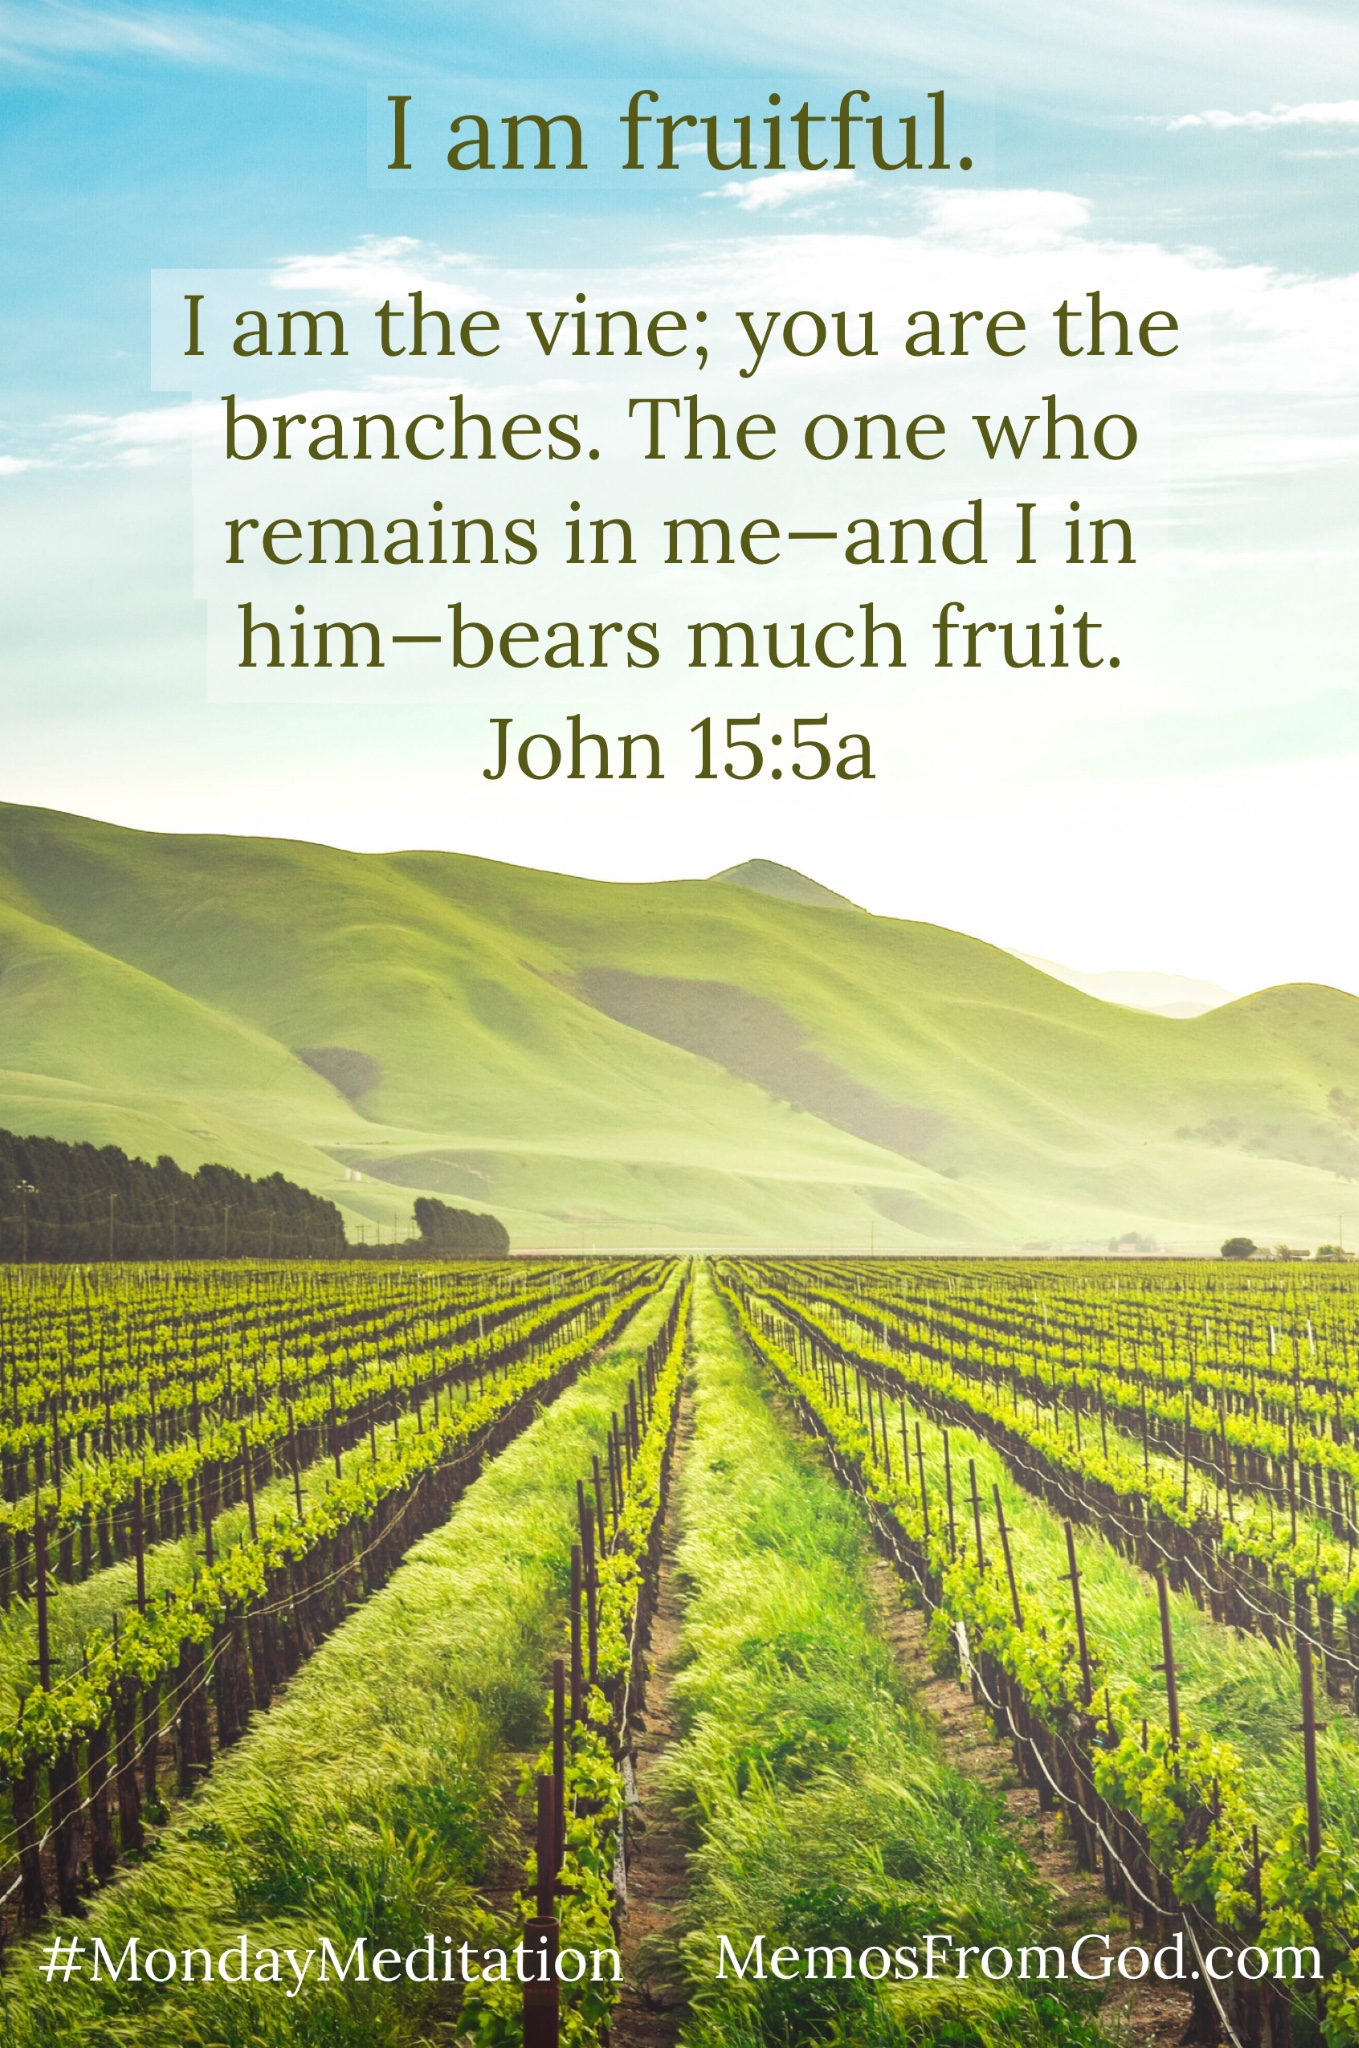 A lush green vineyard with a green mountain and blue sky in the background. Caption: I am the vine; you are the branches. The one who remains in me—and I in him—bears much fruit. John 15:15a